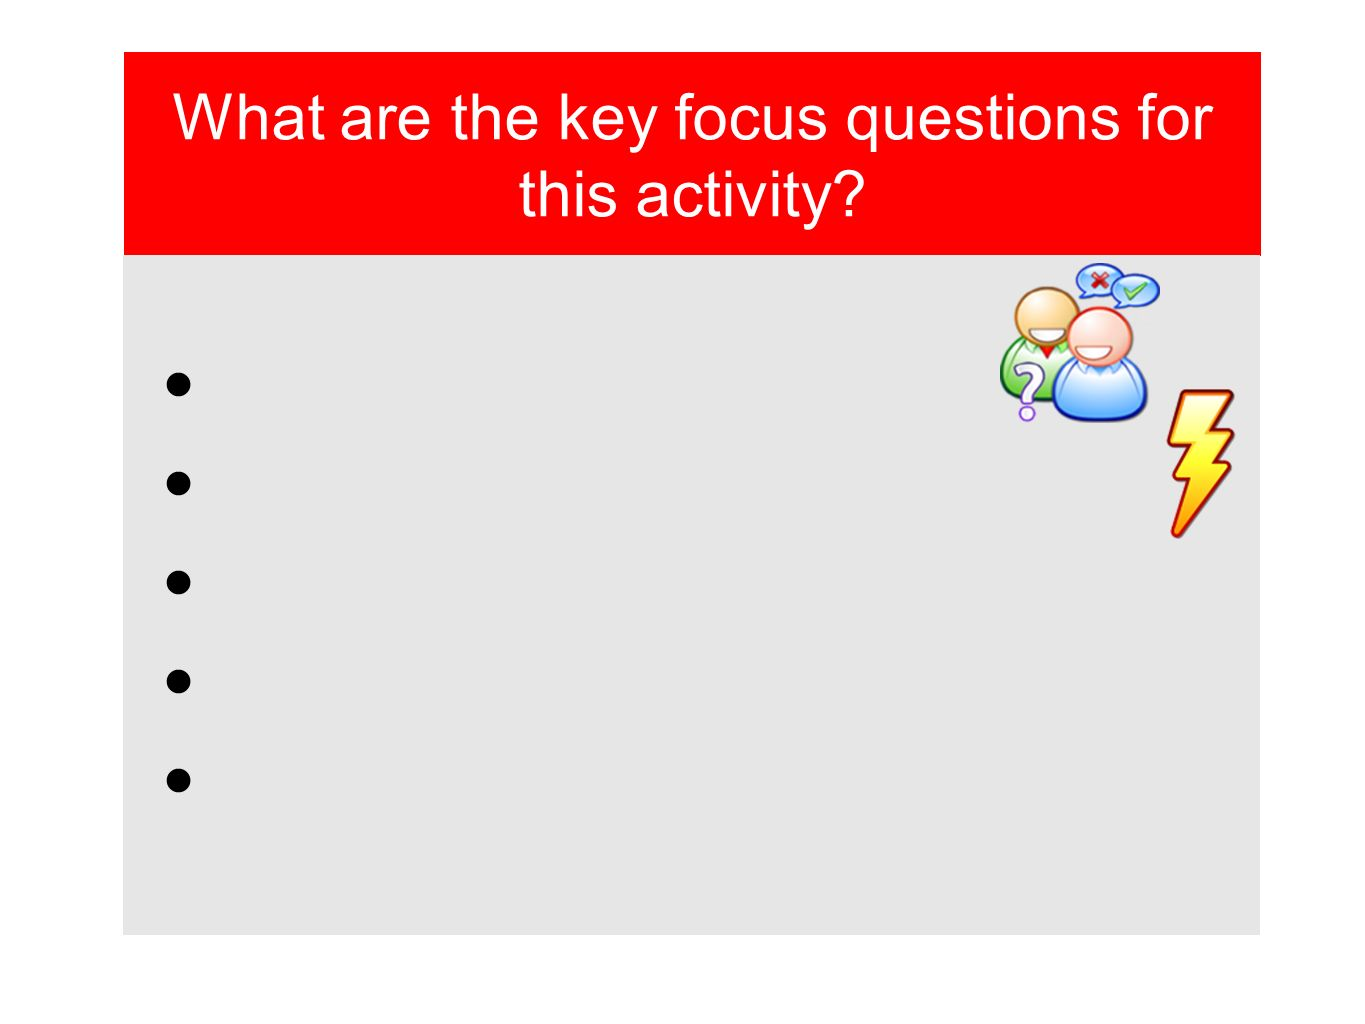 What are the key focus questions for this activity